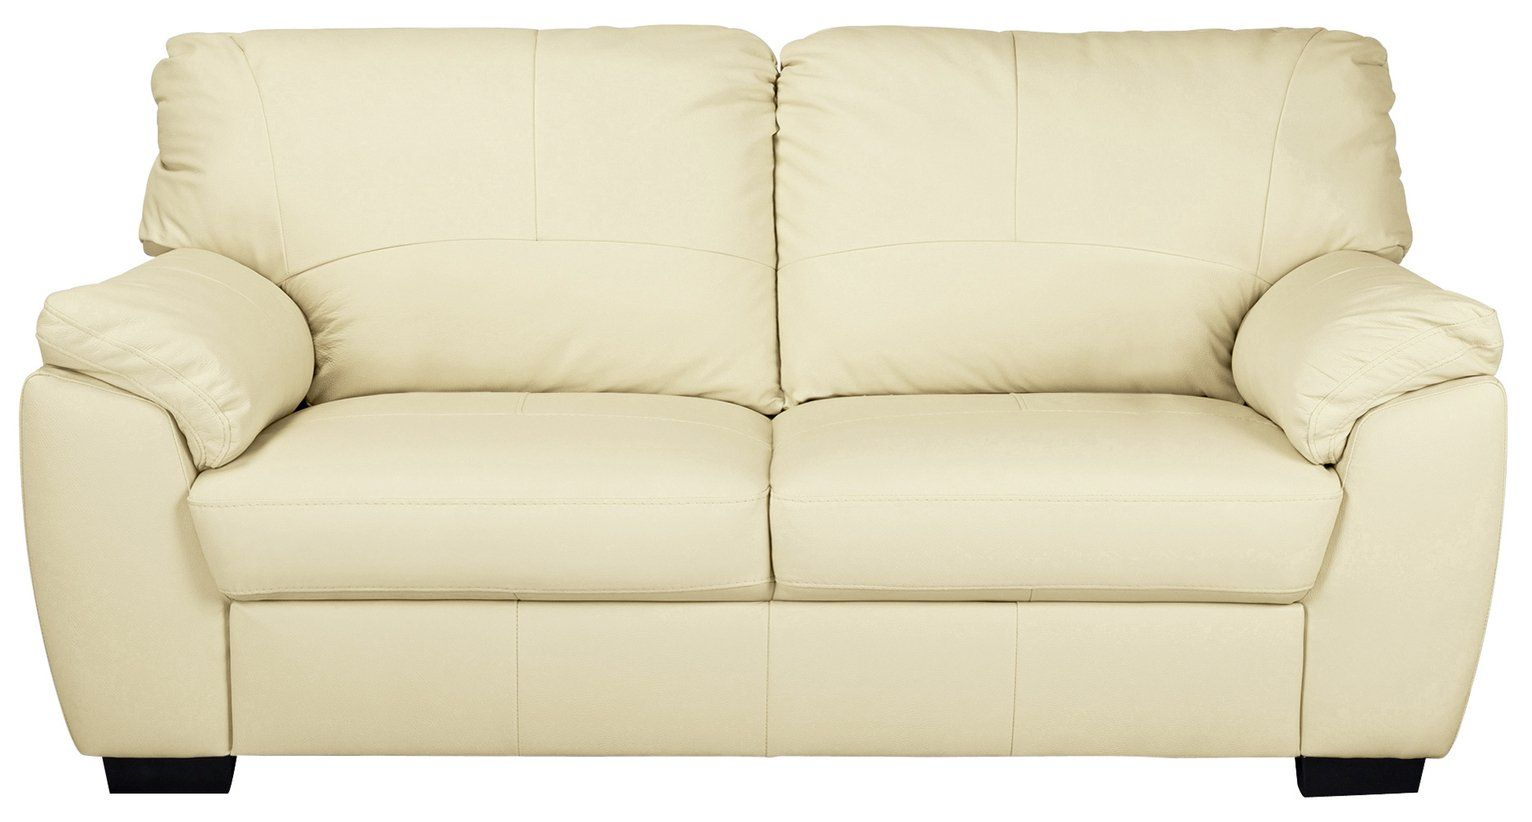 Buy Argos Home Milano 3 Seater Leather Sofa Ivory Sofas In 2020 3 Seater Leather Sofa Leather Sofa Cushions On Sofa